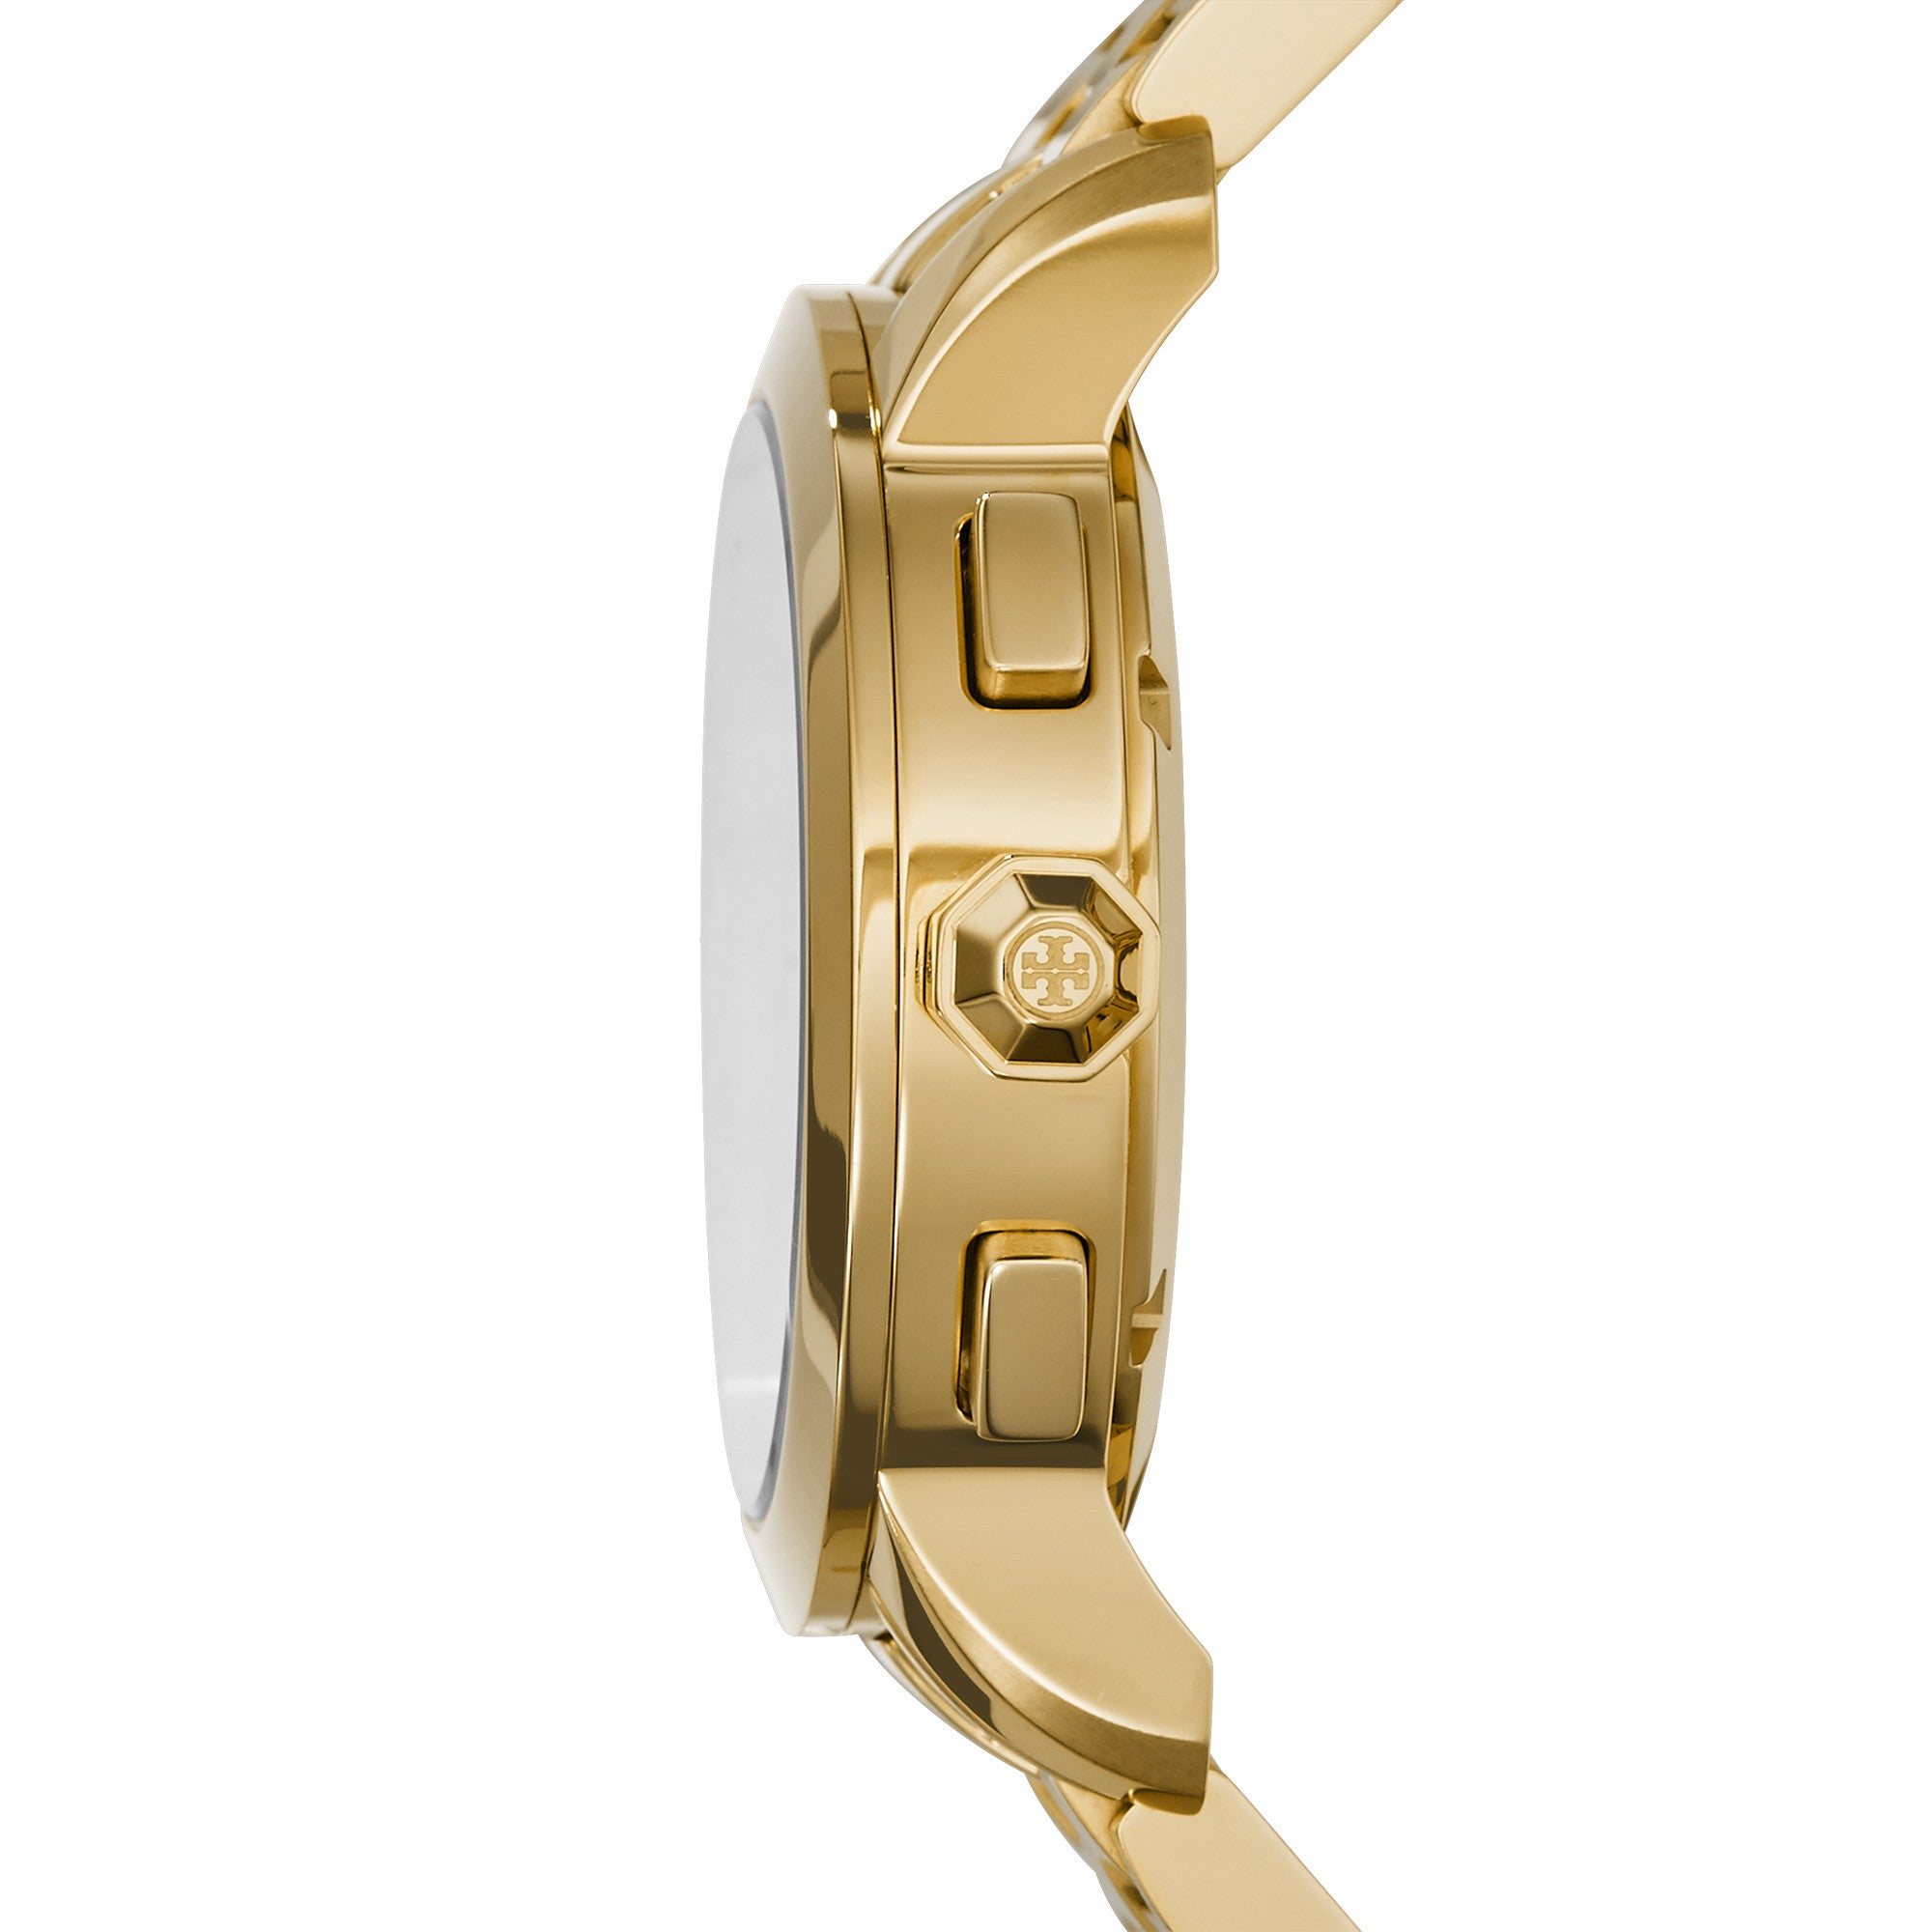 TORY WATCH, GOLD-TONE/NAVY CHRONOGRAPH, 37 MM